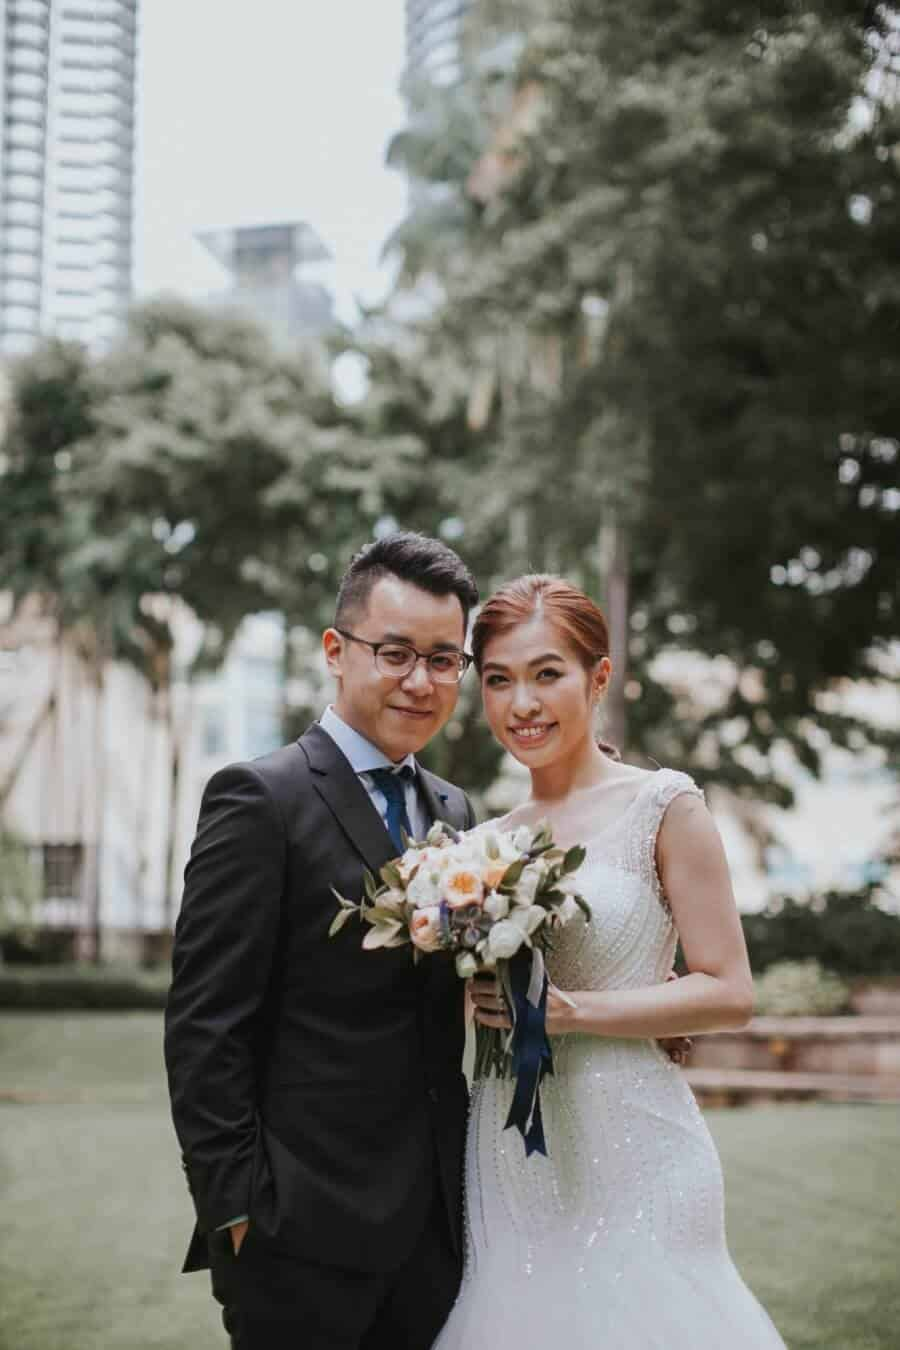 Malaysia Classic Simple elegant Wedding Mandarin Oriental Kuala Lumpur calligraphy Cliff Choong Photography Jon Sharon golden sunrise calligraphy bride bridesmaids groom